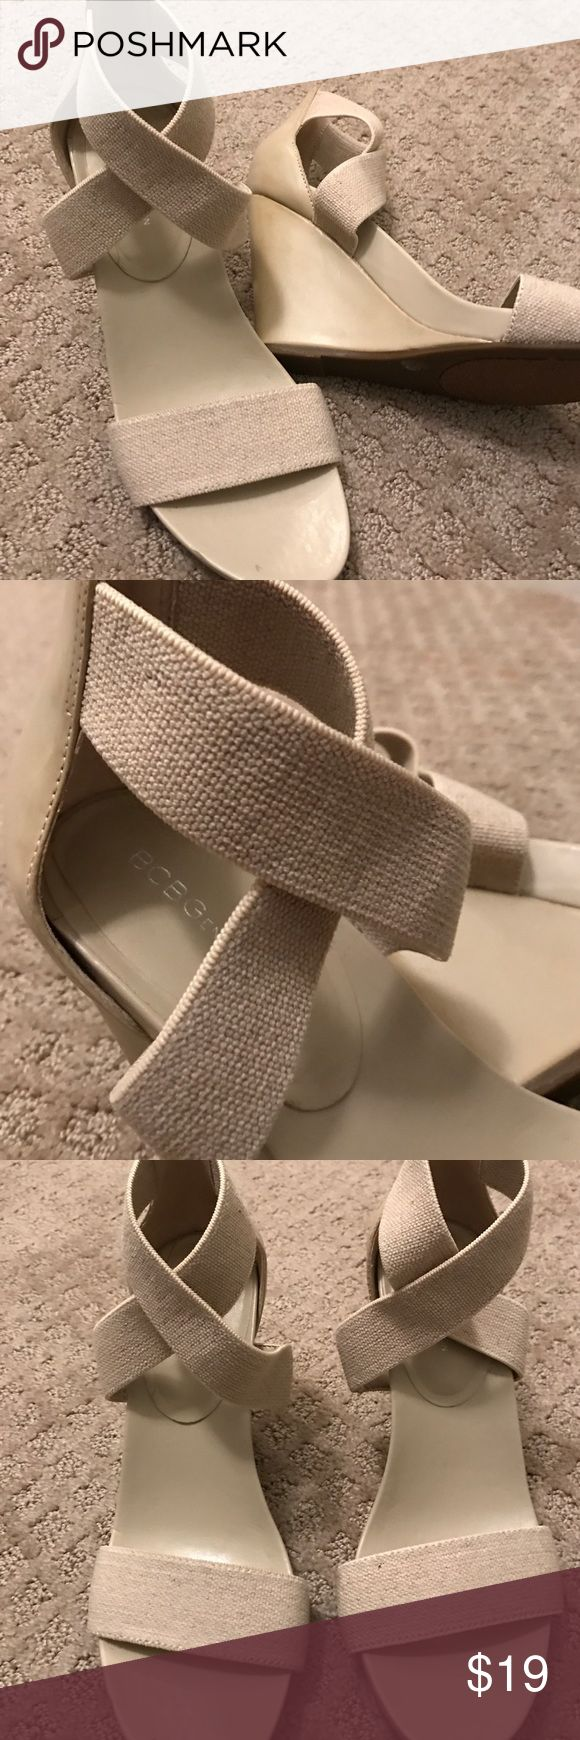 Neutral Wedge Sandals Very nice 3 1/2 inch wedge. Neutral canvas elastic straps. BCBGeneration Shoes Wedges